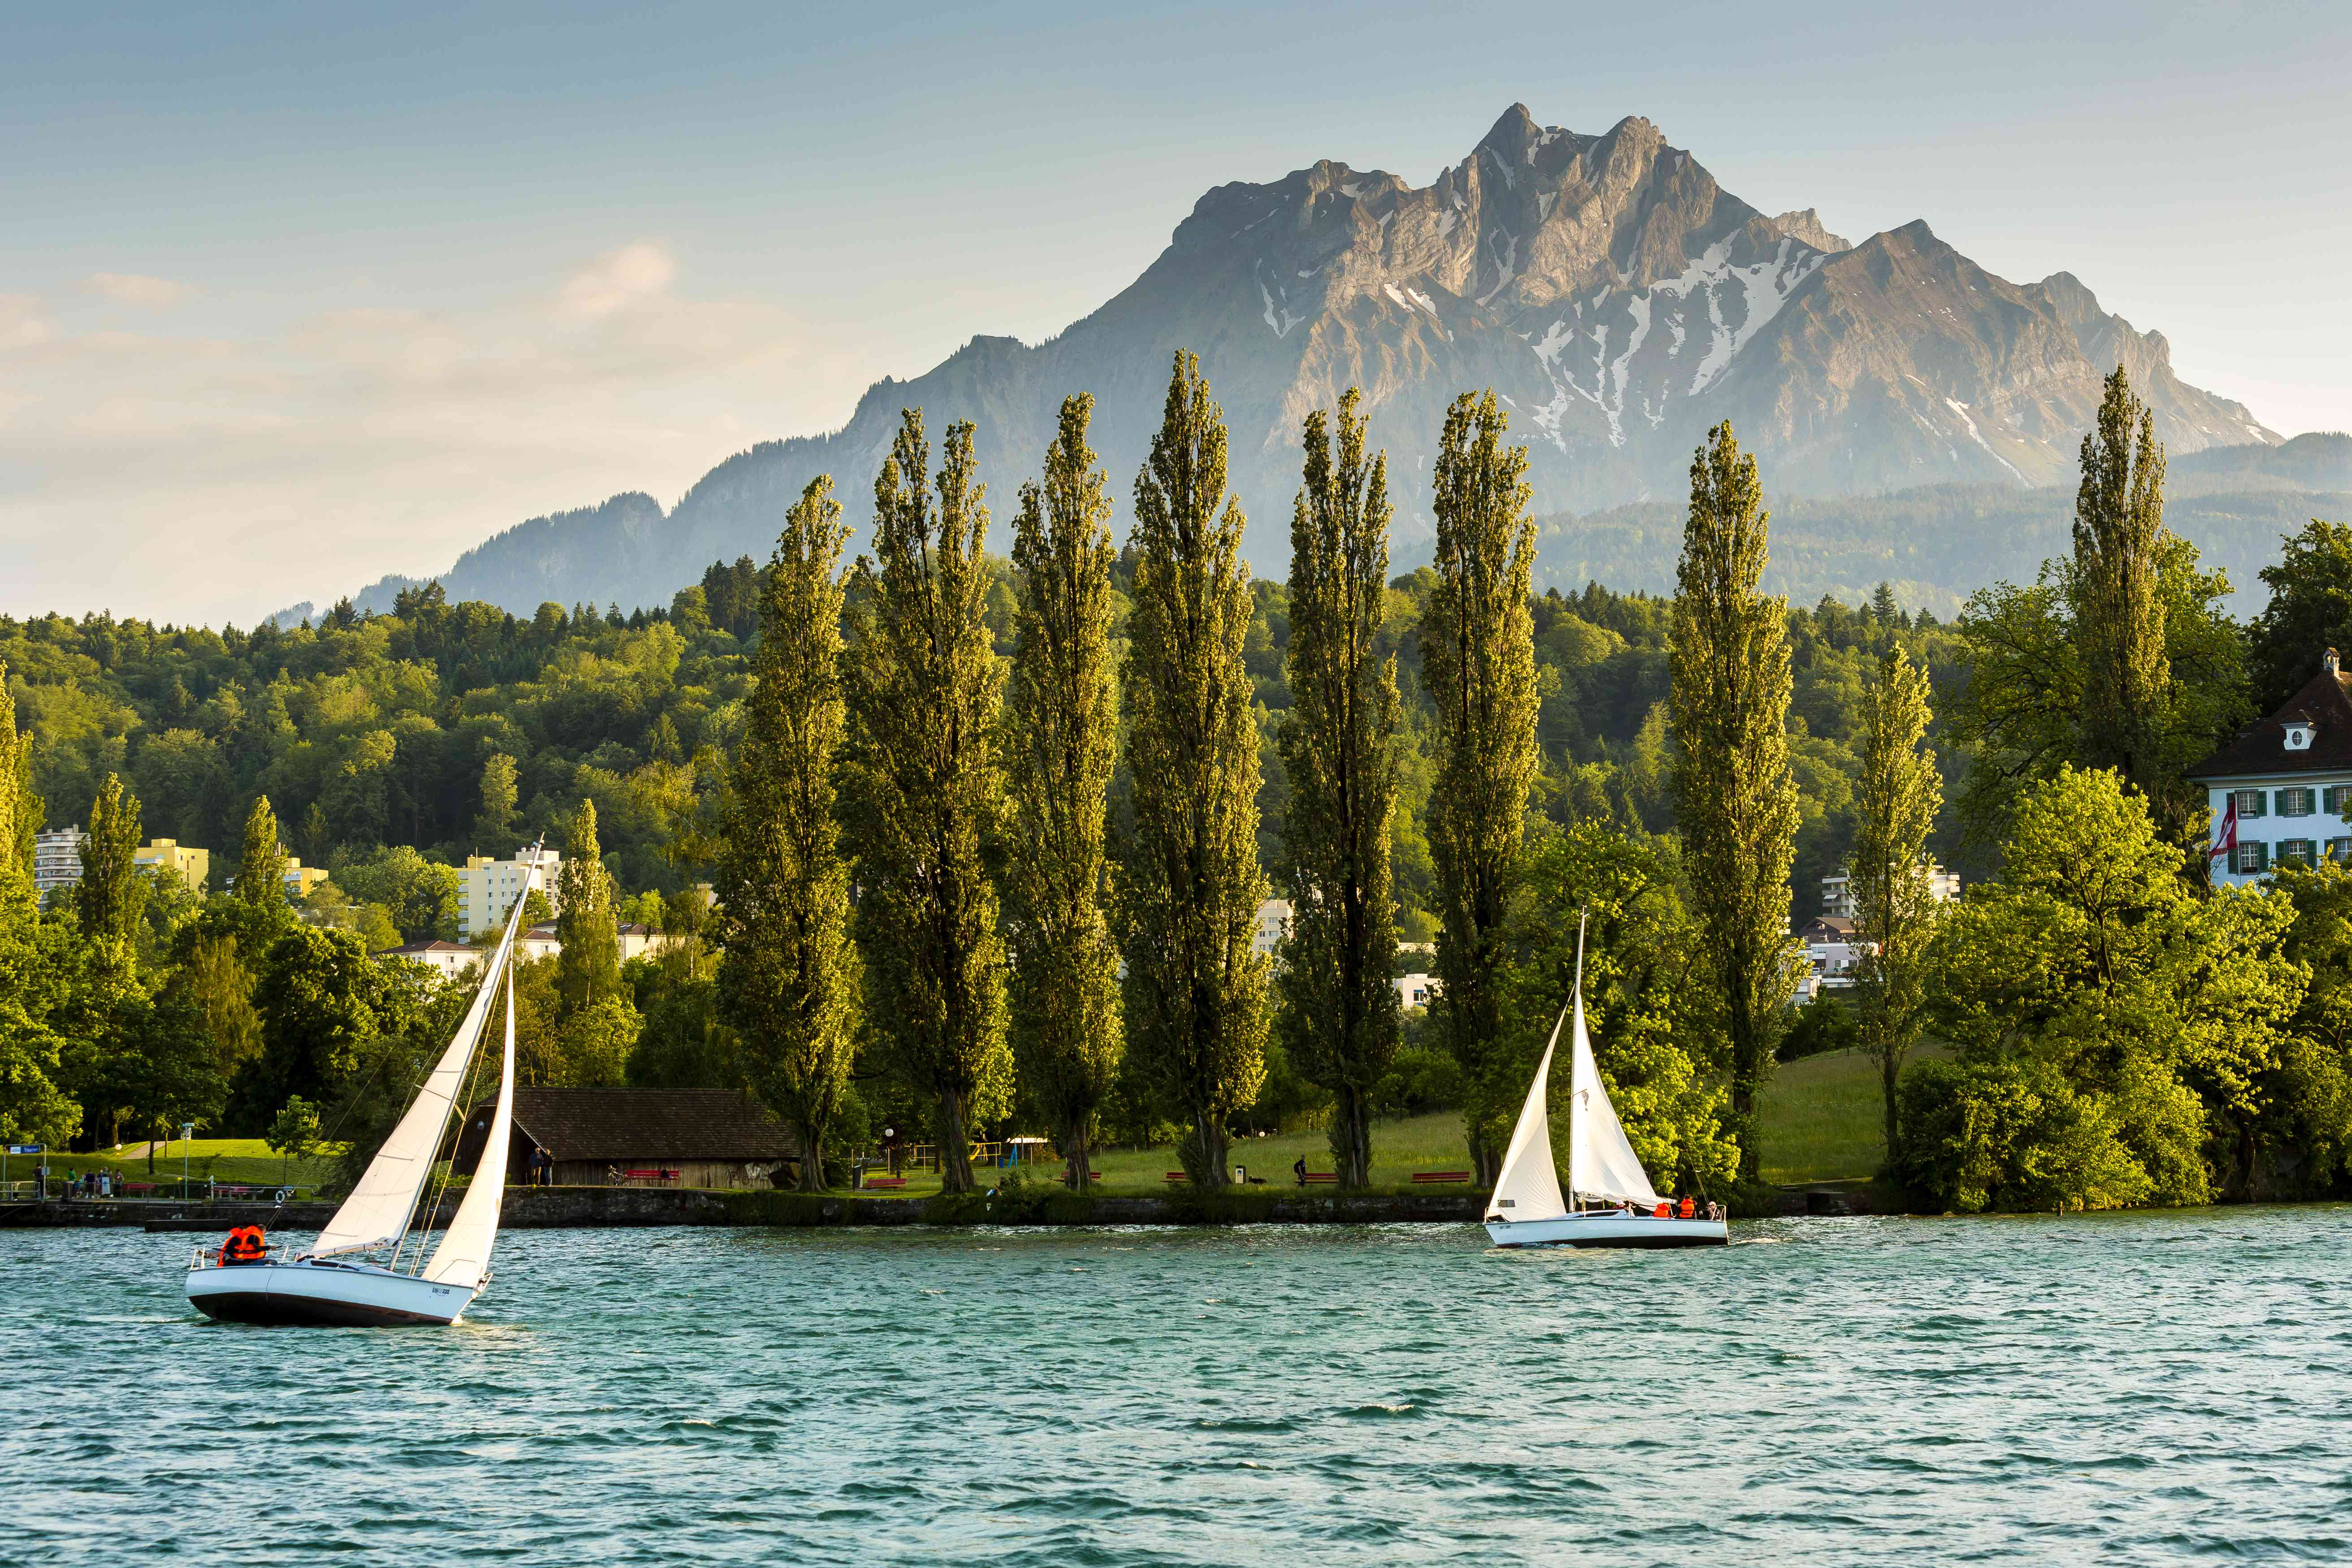 Sailboats on Lake Lucerne with Mt Pilatus in the background